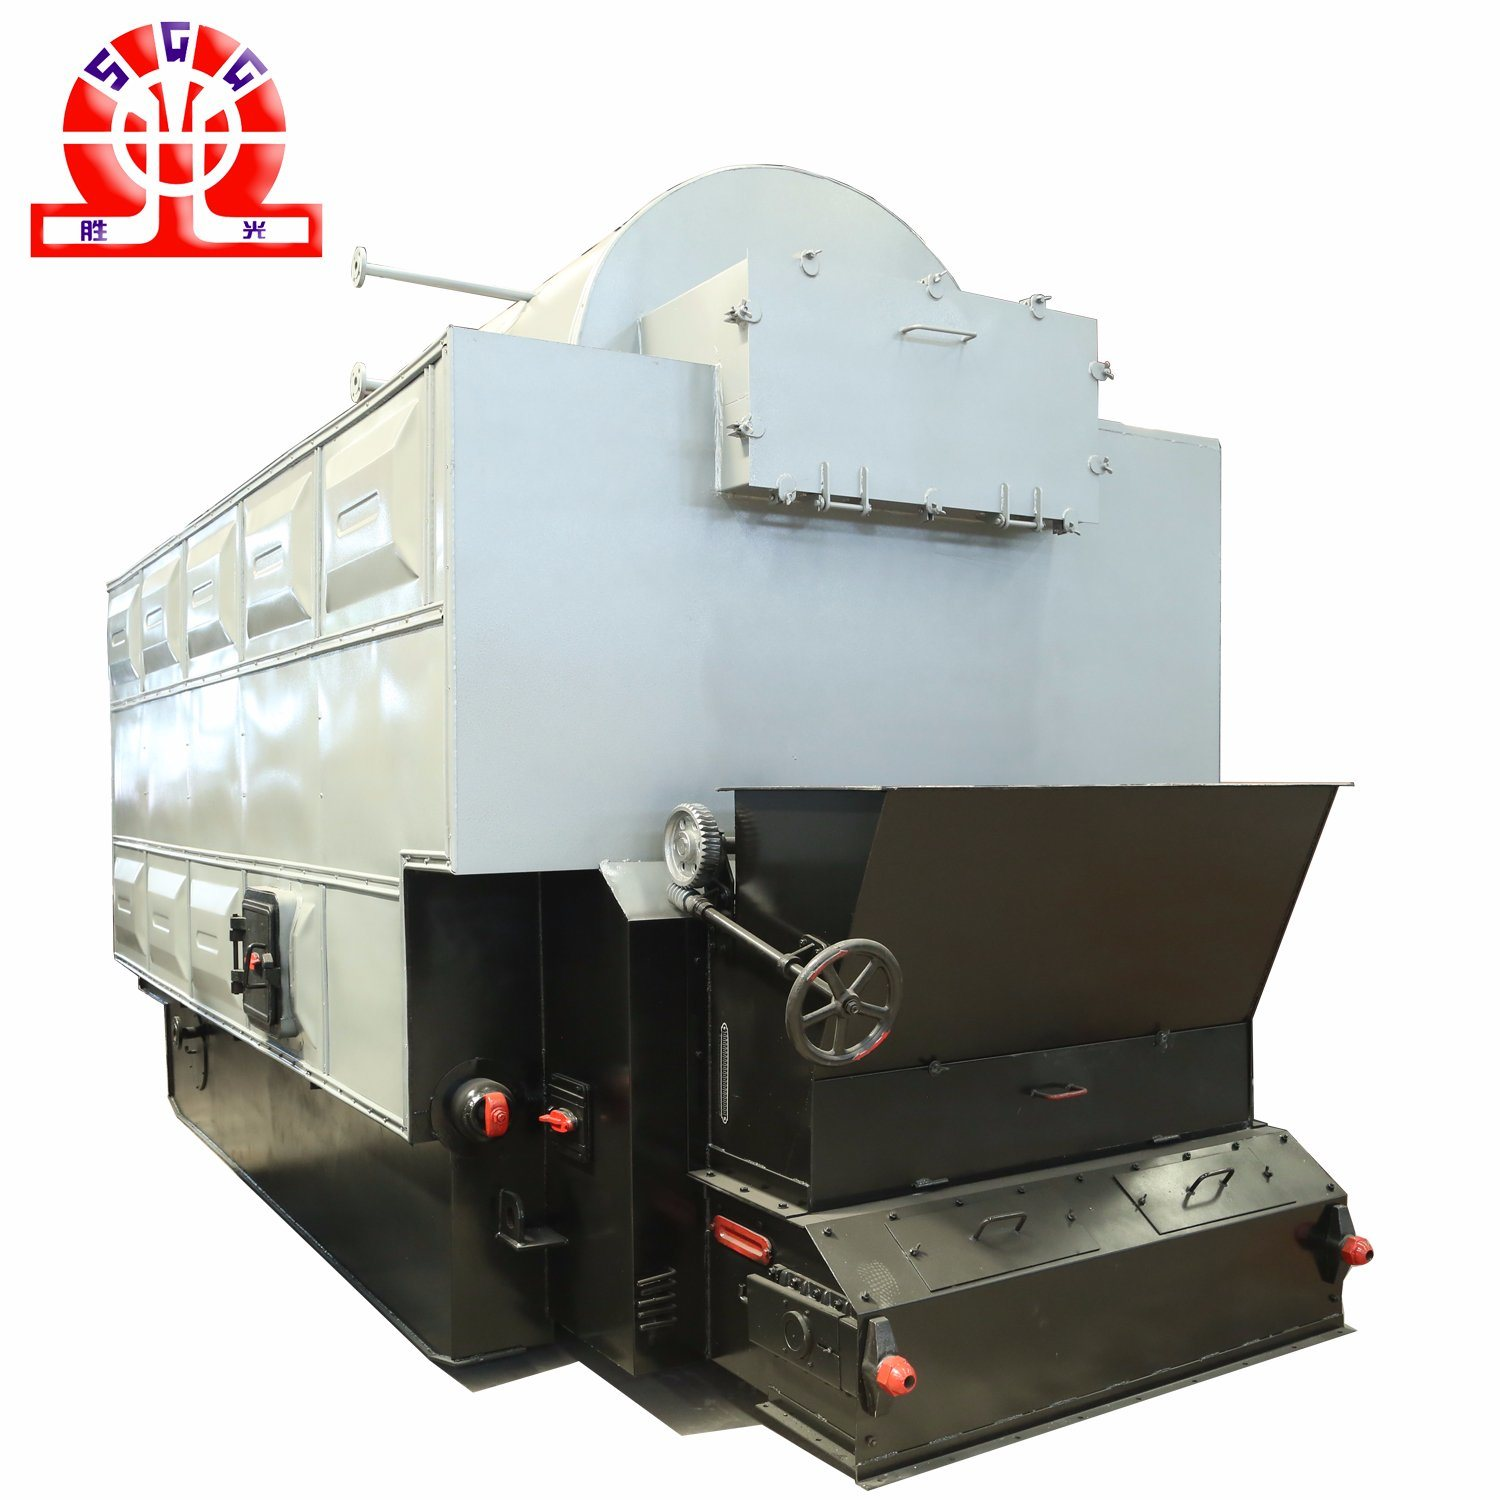 The best solid fuel boiler made in Russia 16